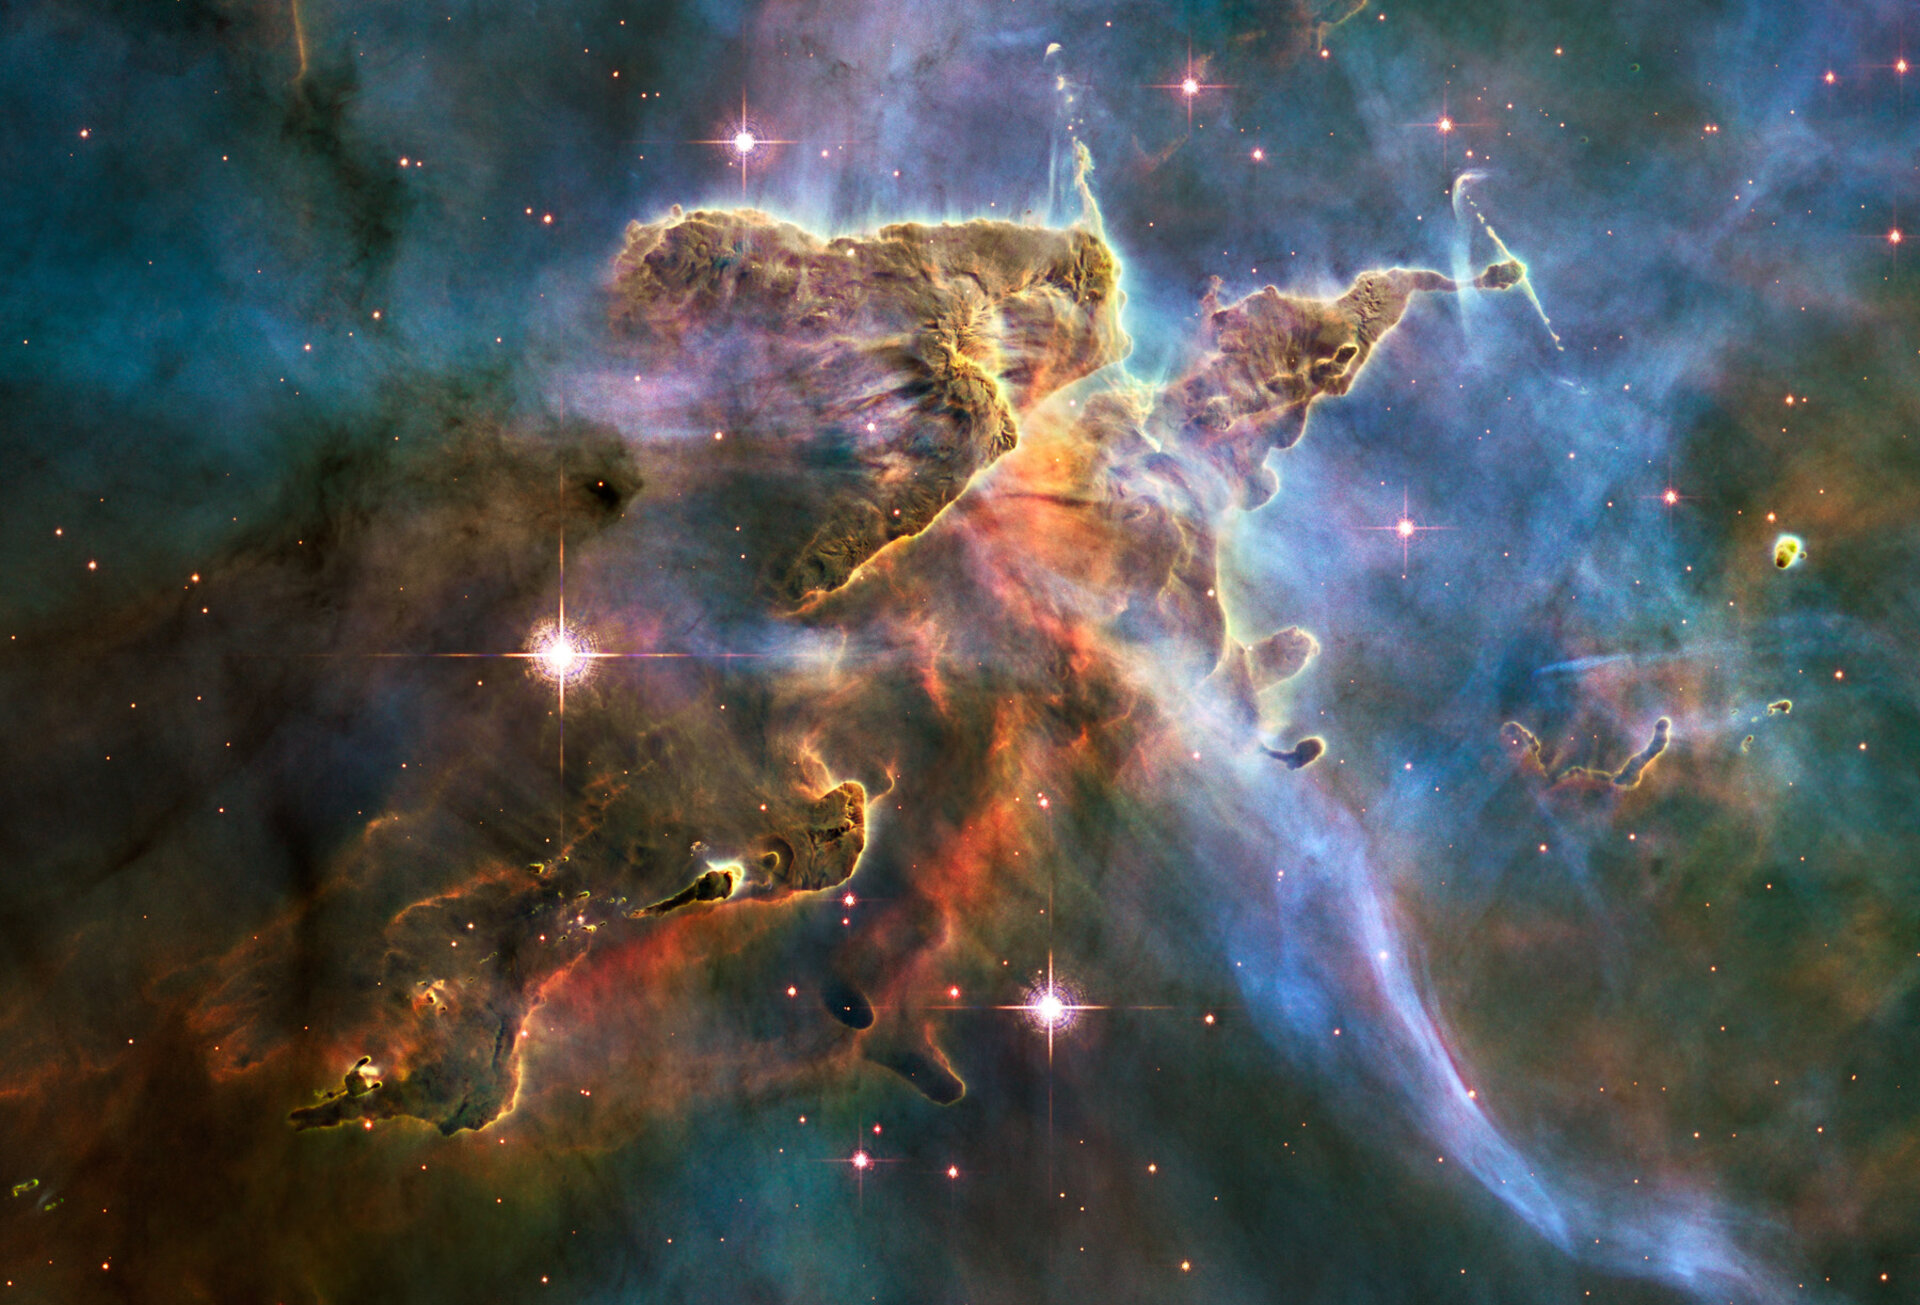 Hubble captures spectacular 'landscape' in the Carina Nebula